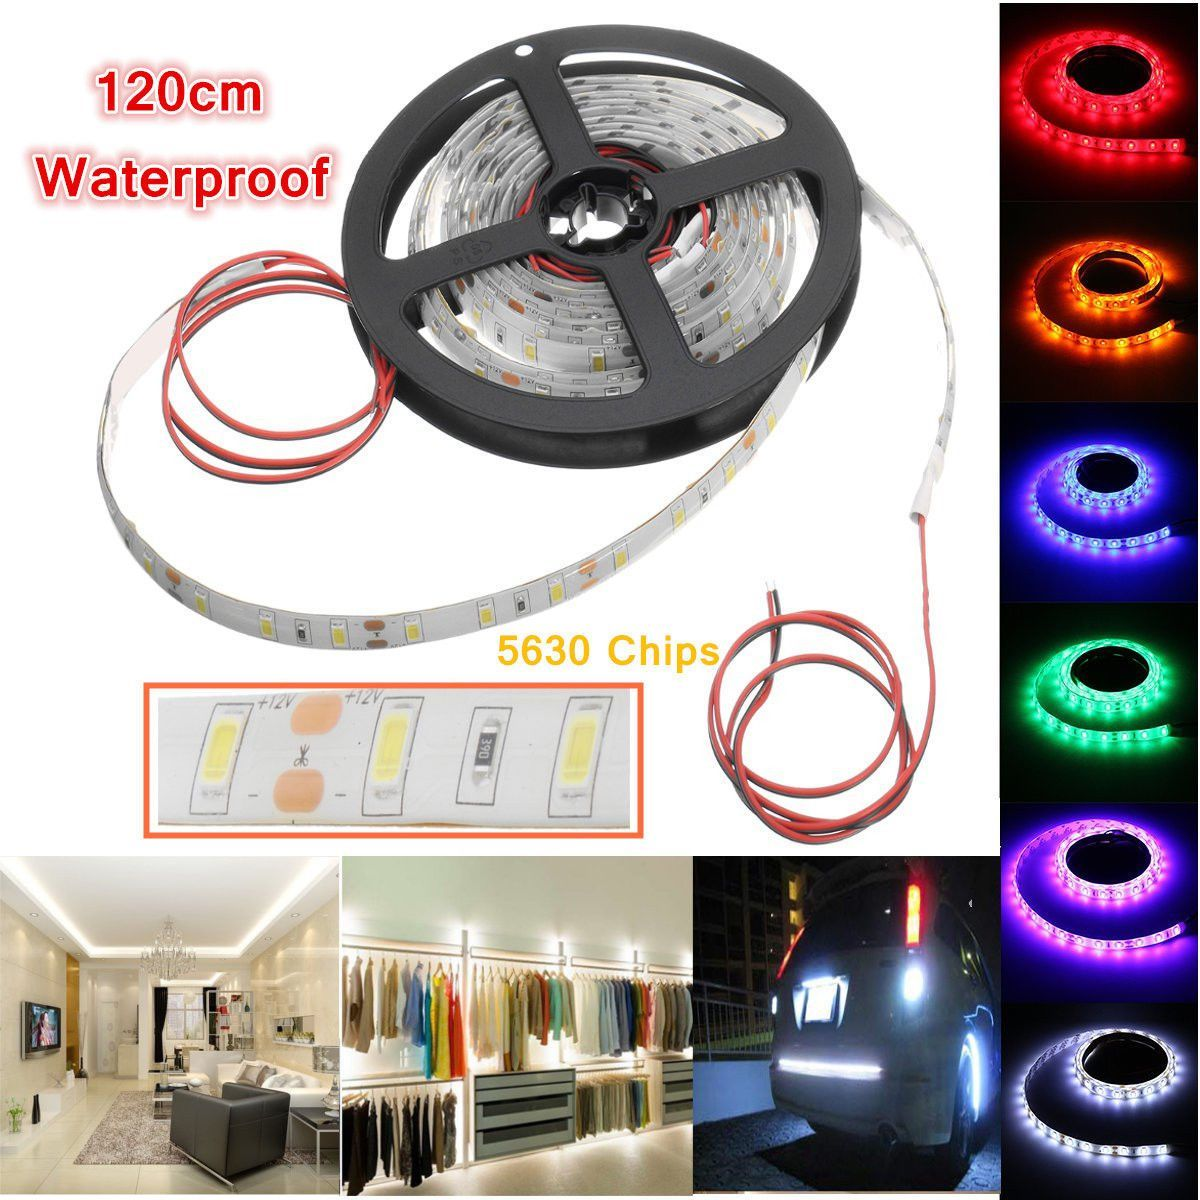 4x 1 2m Waterproof 5630 Led Strip Light Bars Camping Caravan Boat Car Motors 12v Bande De Lumiere Led Deco Moto